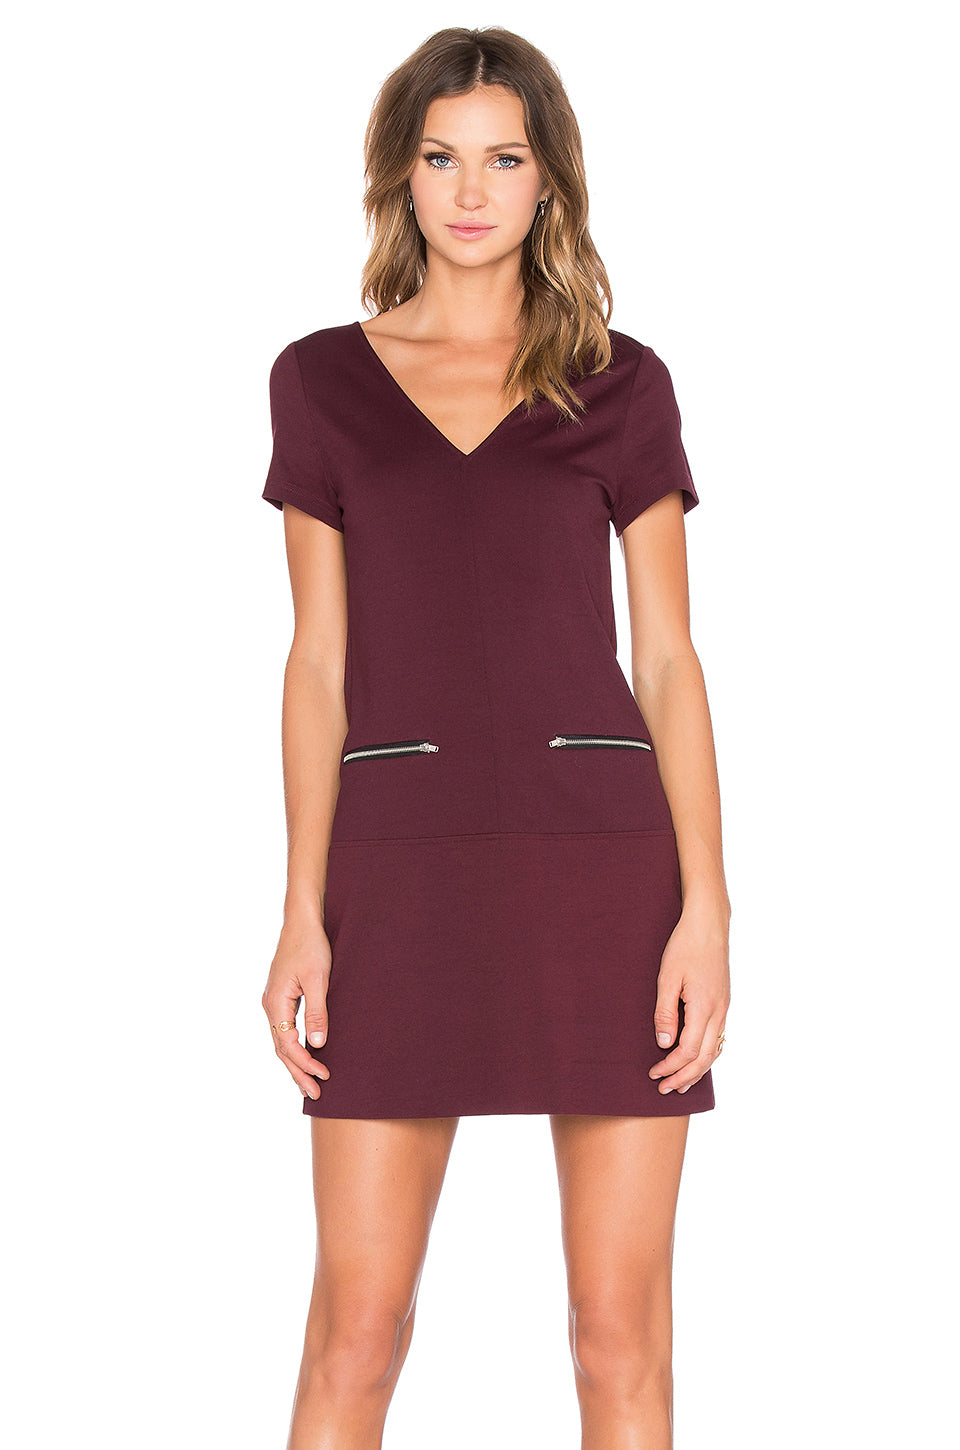 Sanctuary Women's V-Neck Short Sleeve Mini Dress Mulberry XL